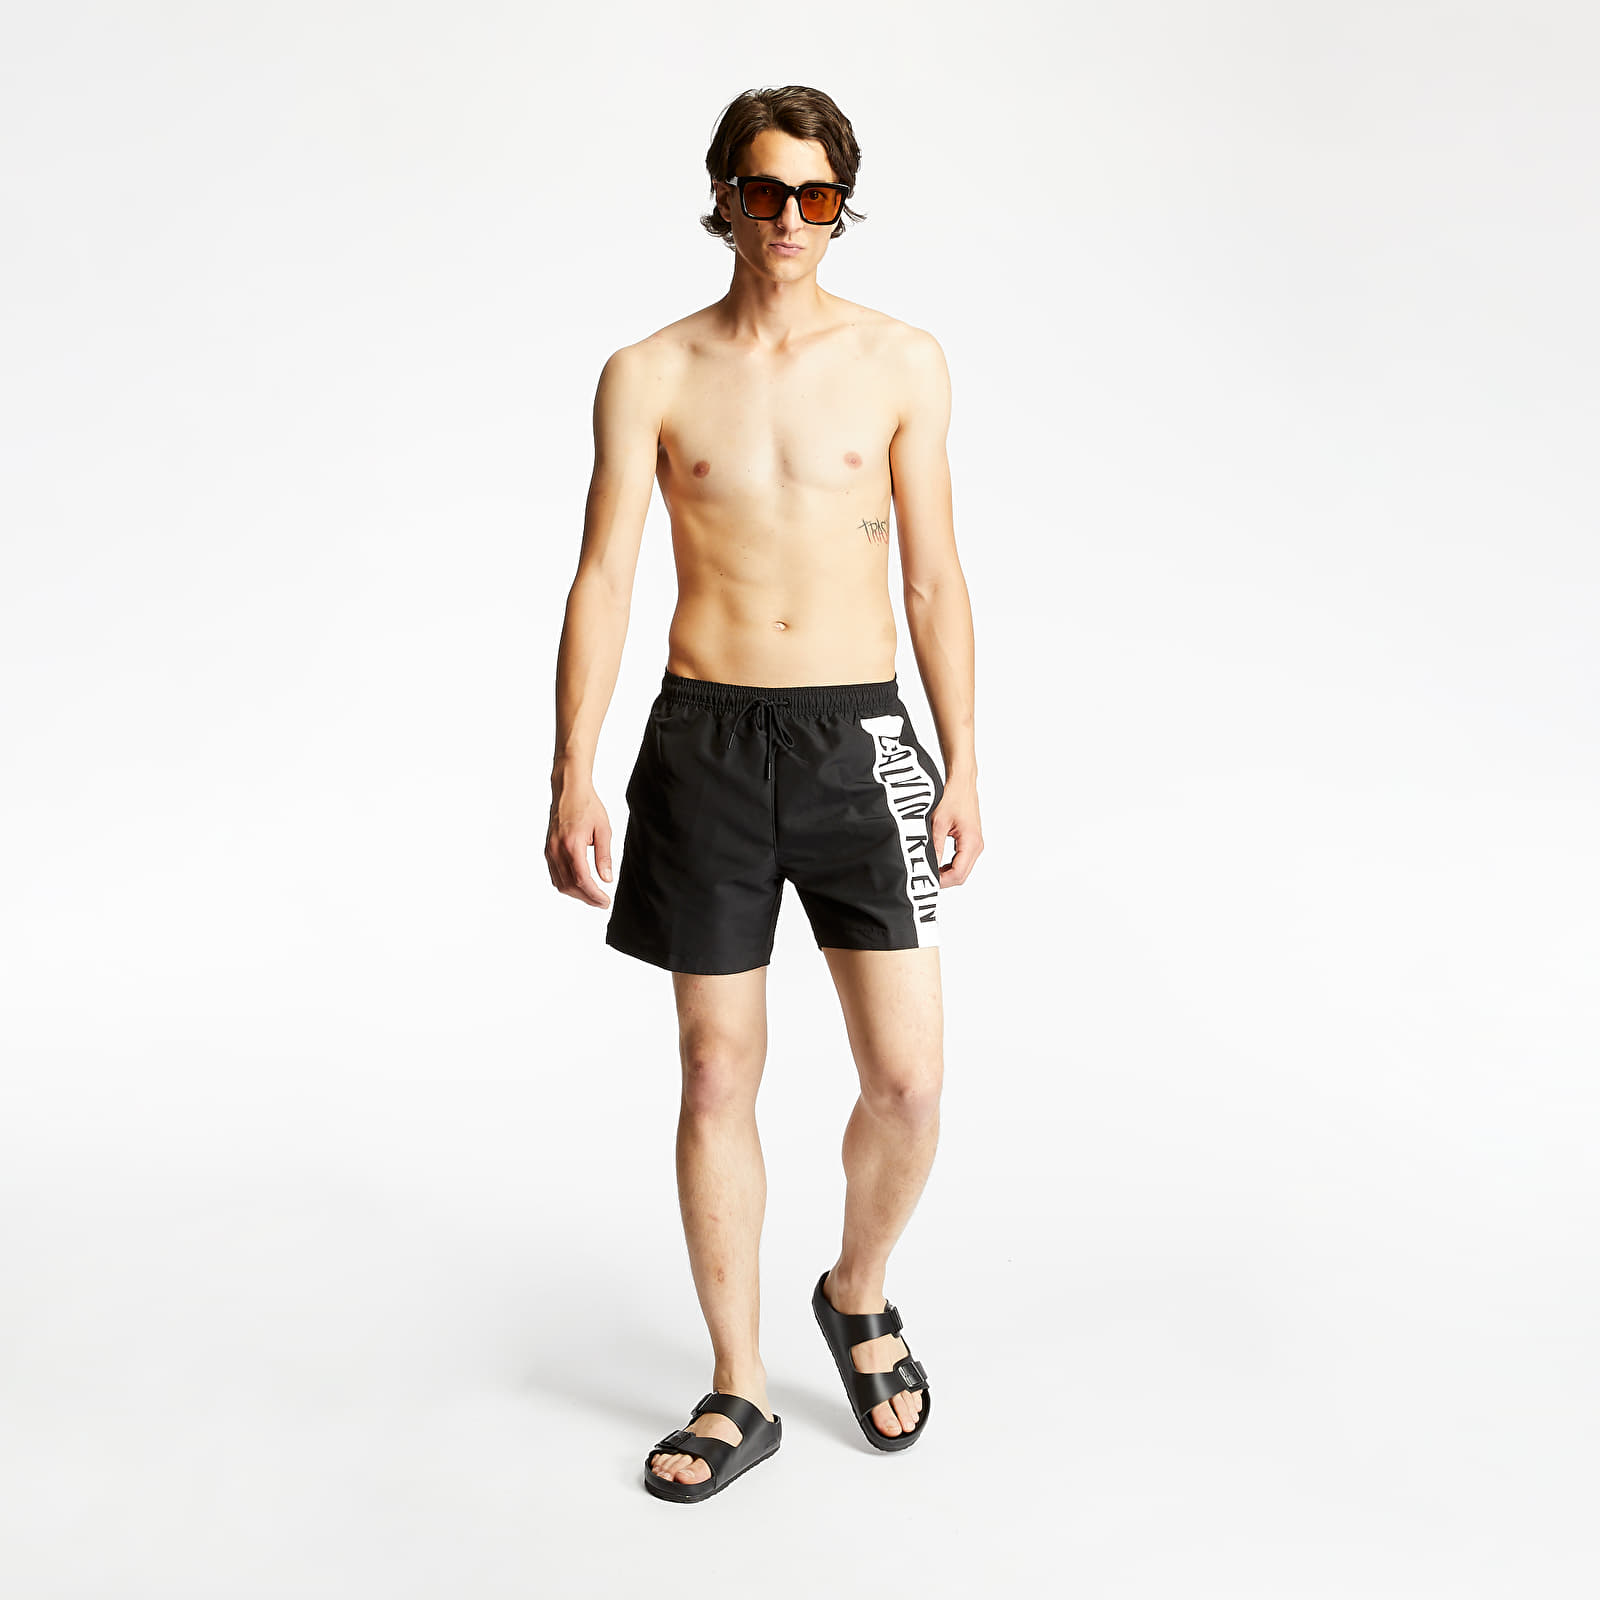 Men's Clothing Calvin Klein Medium Drawstring Swim Shorts Black